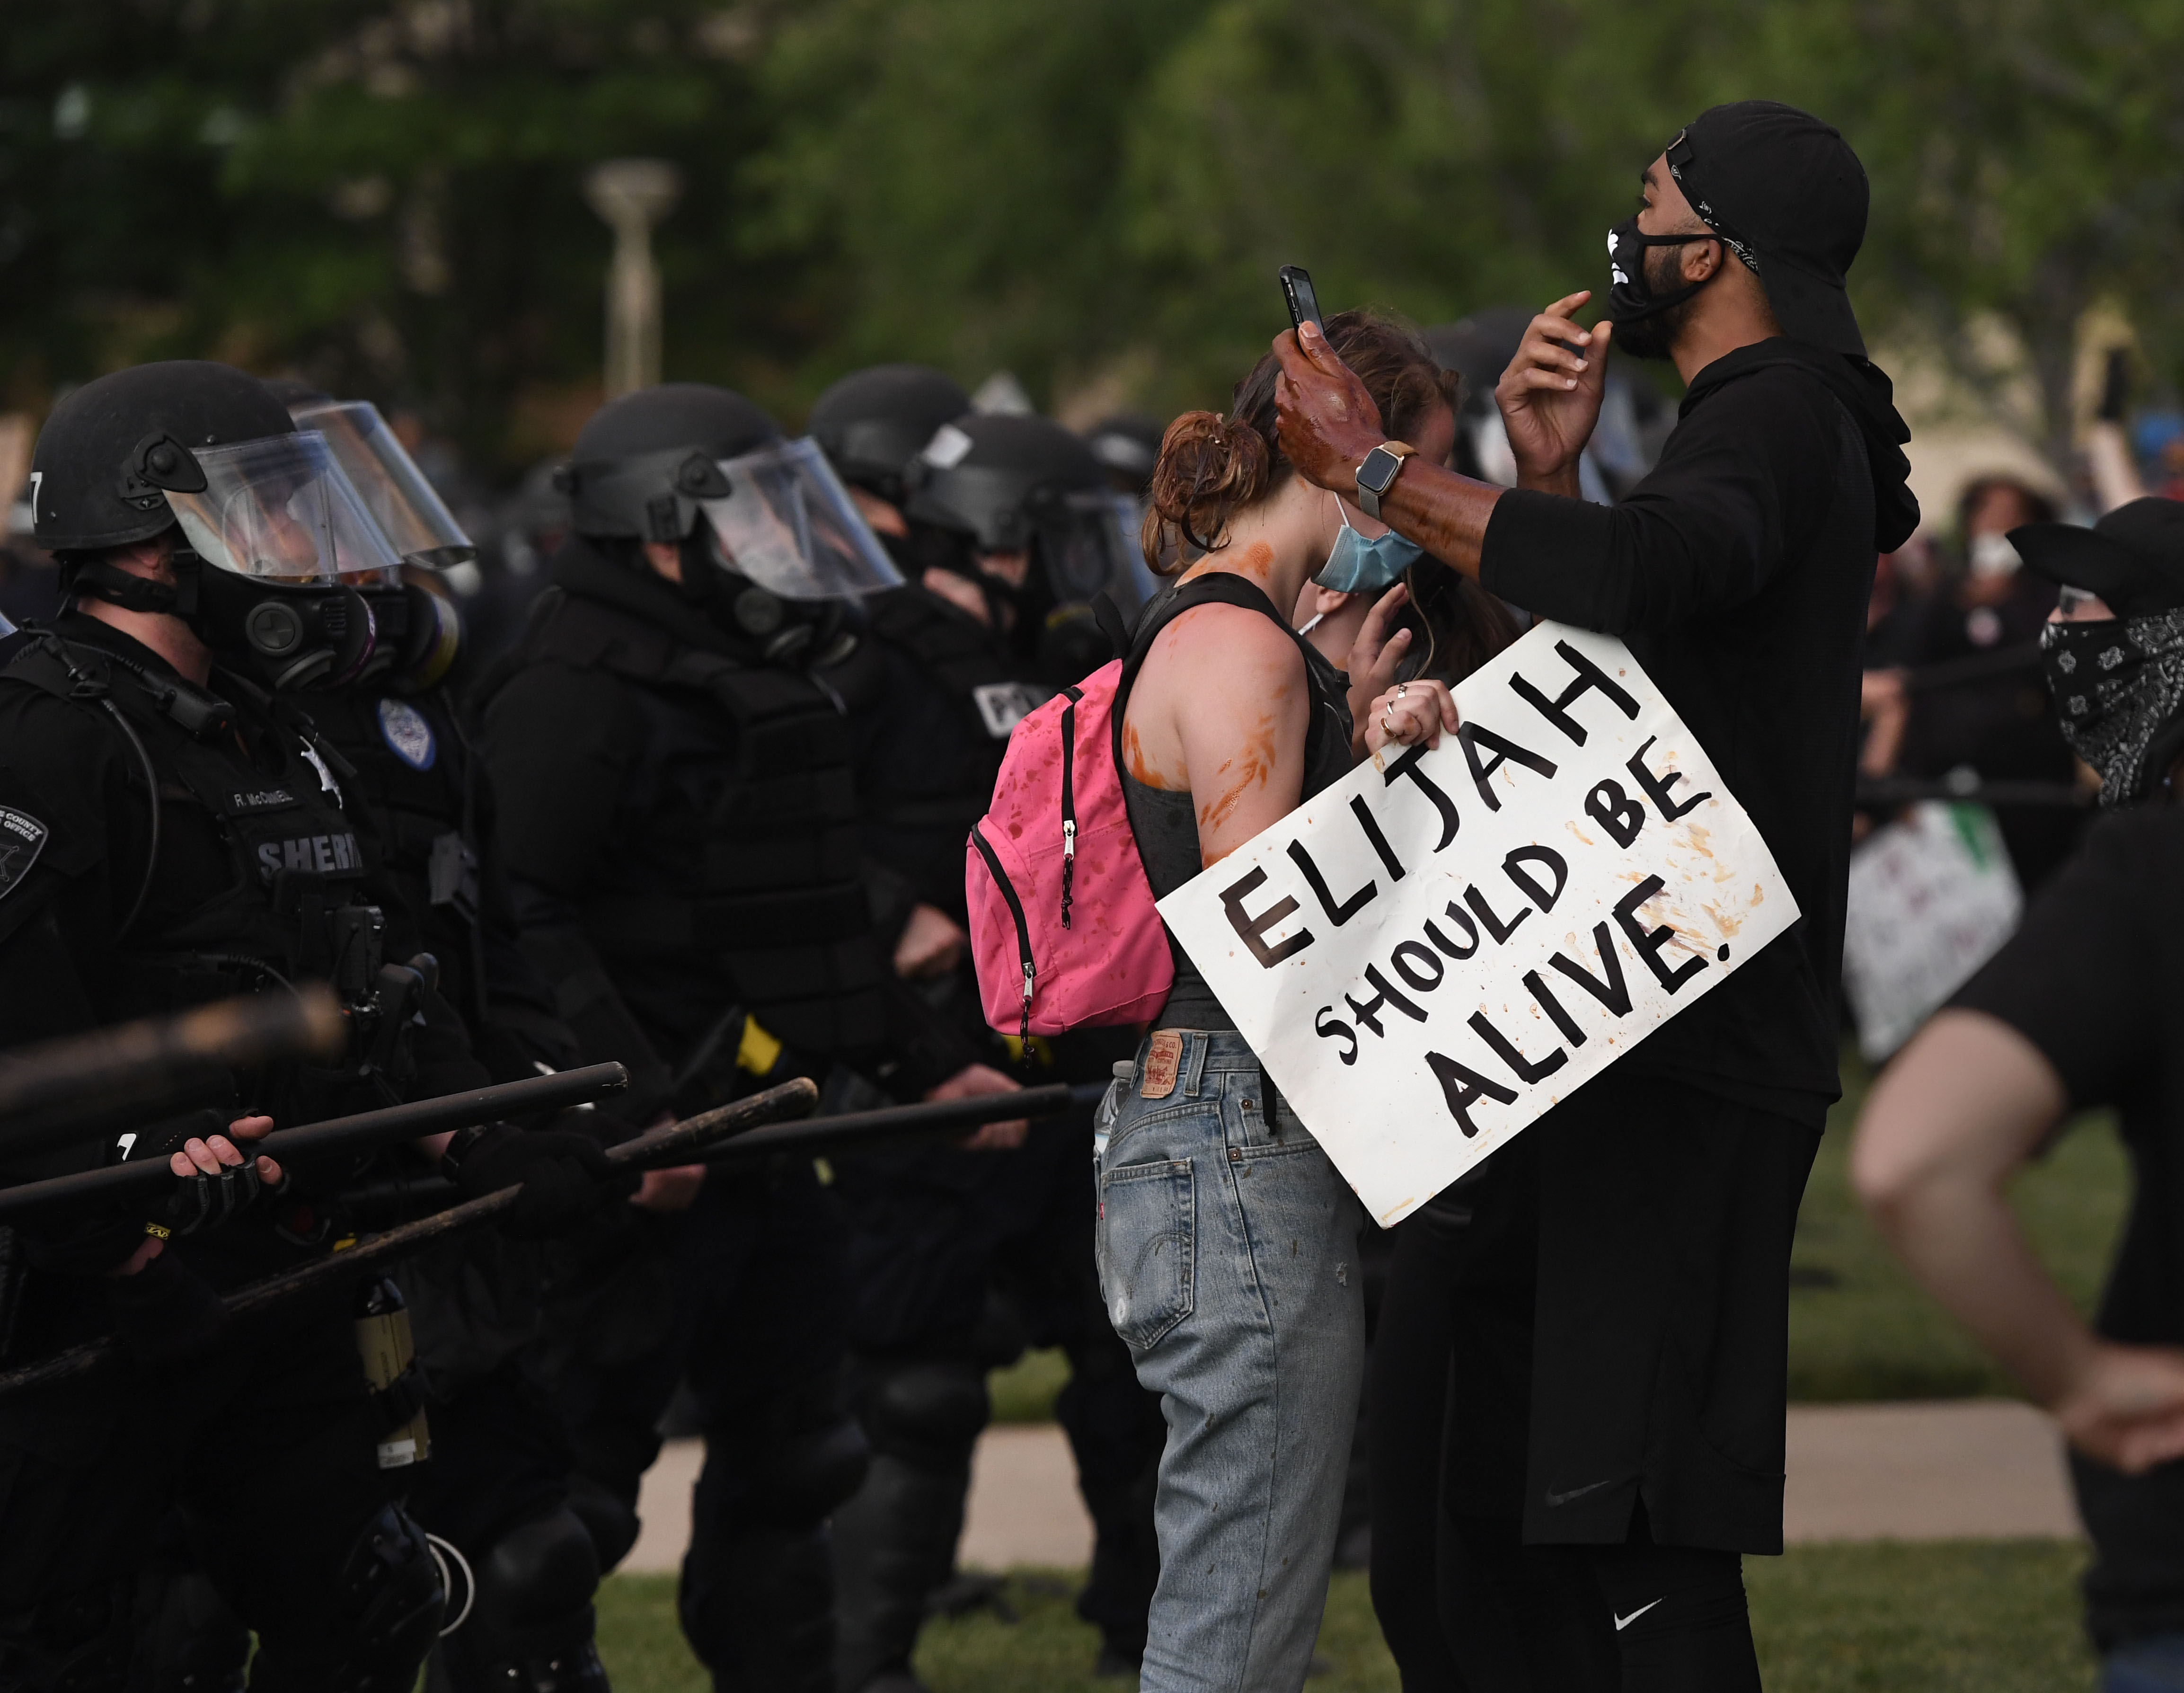 Elijah McClain protesters close to the ...